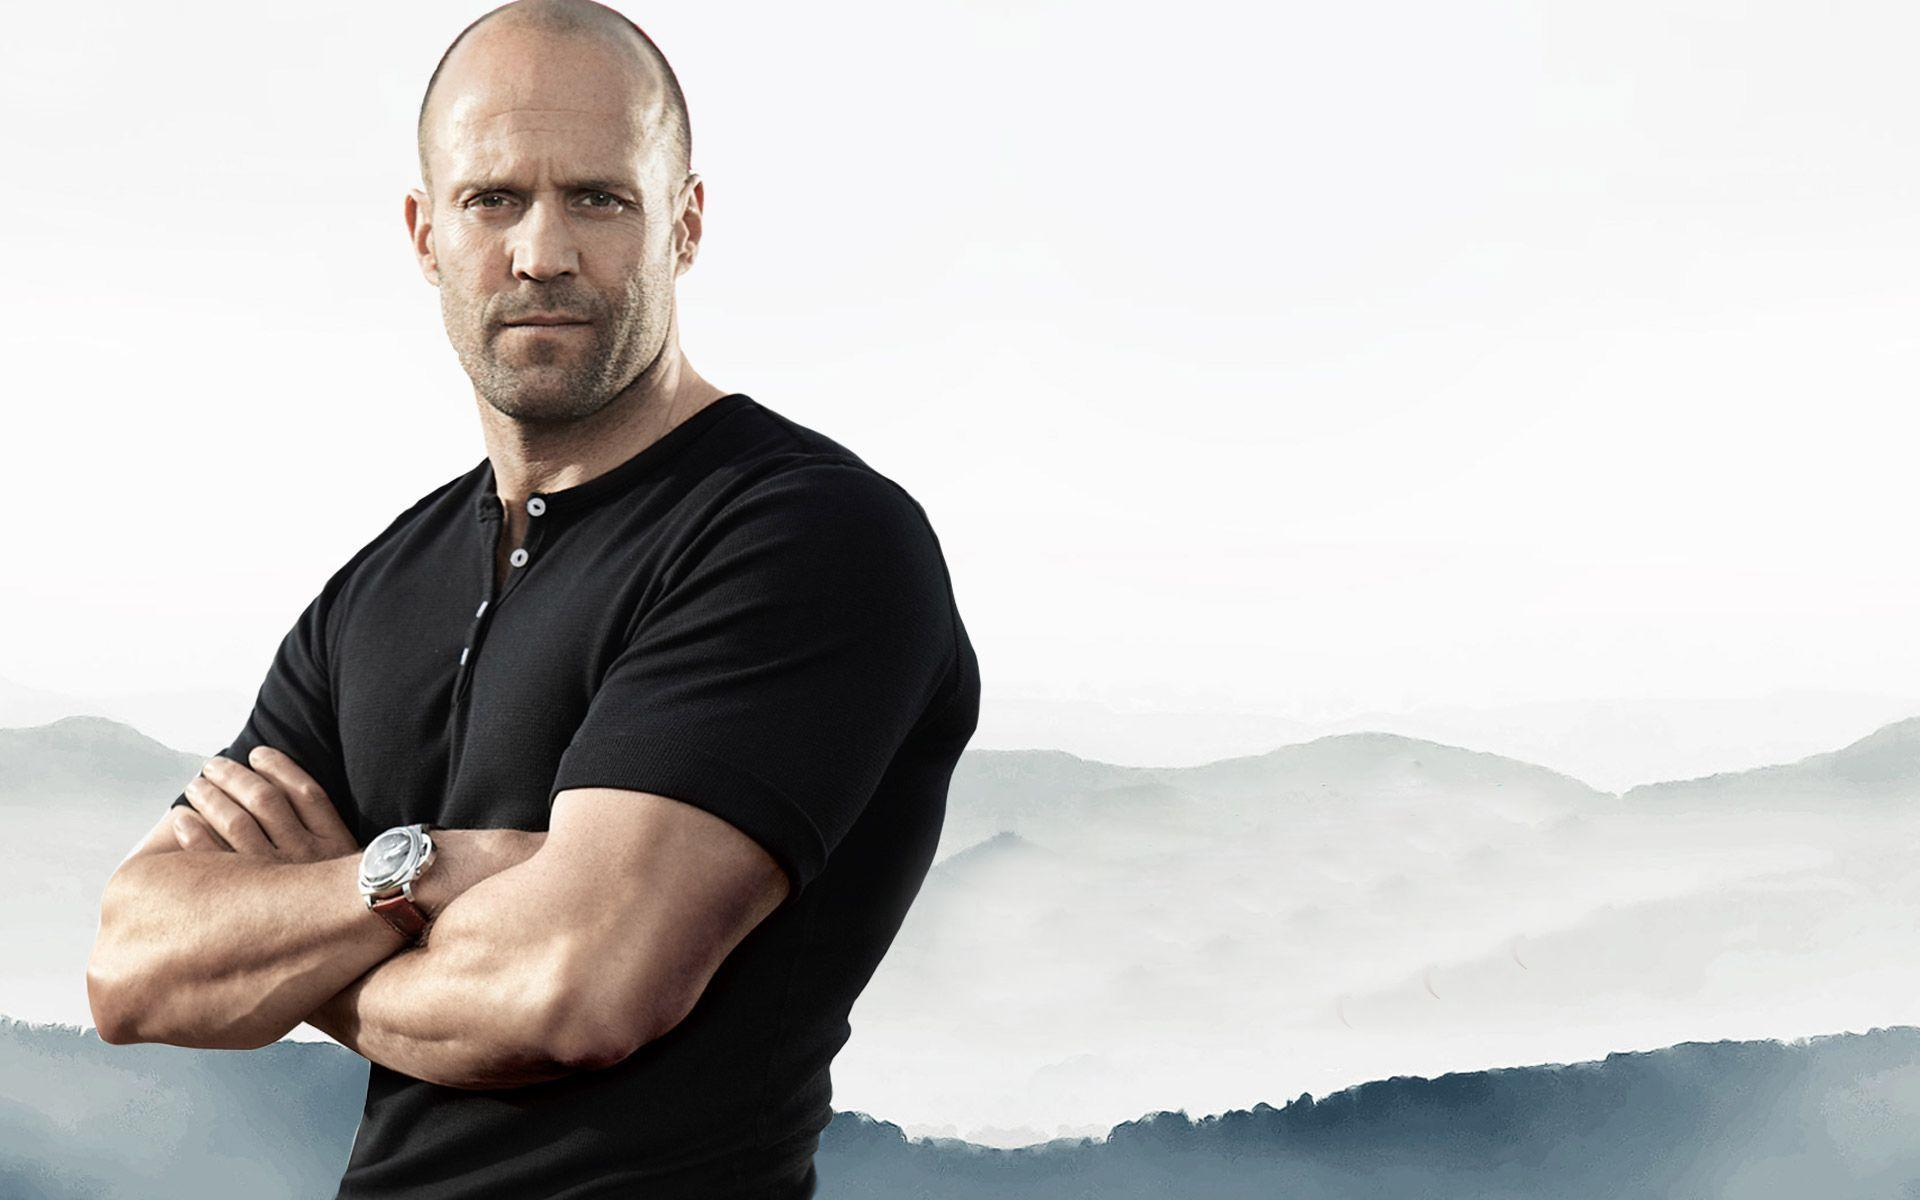 jason statham pictures | Mass Pictures